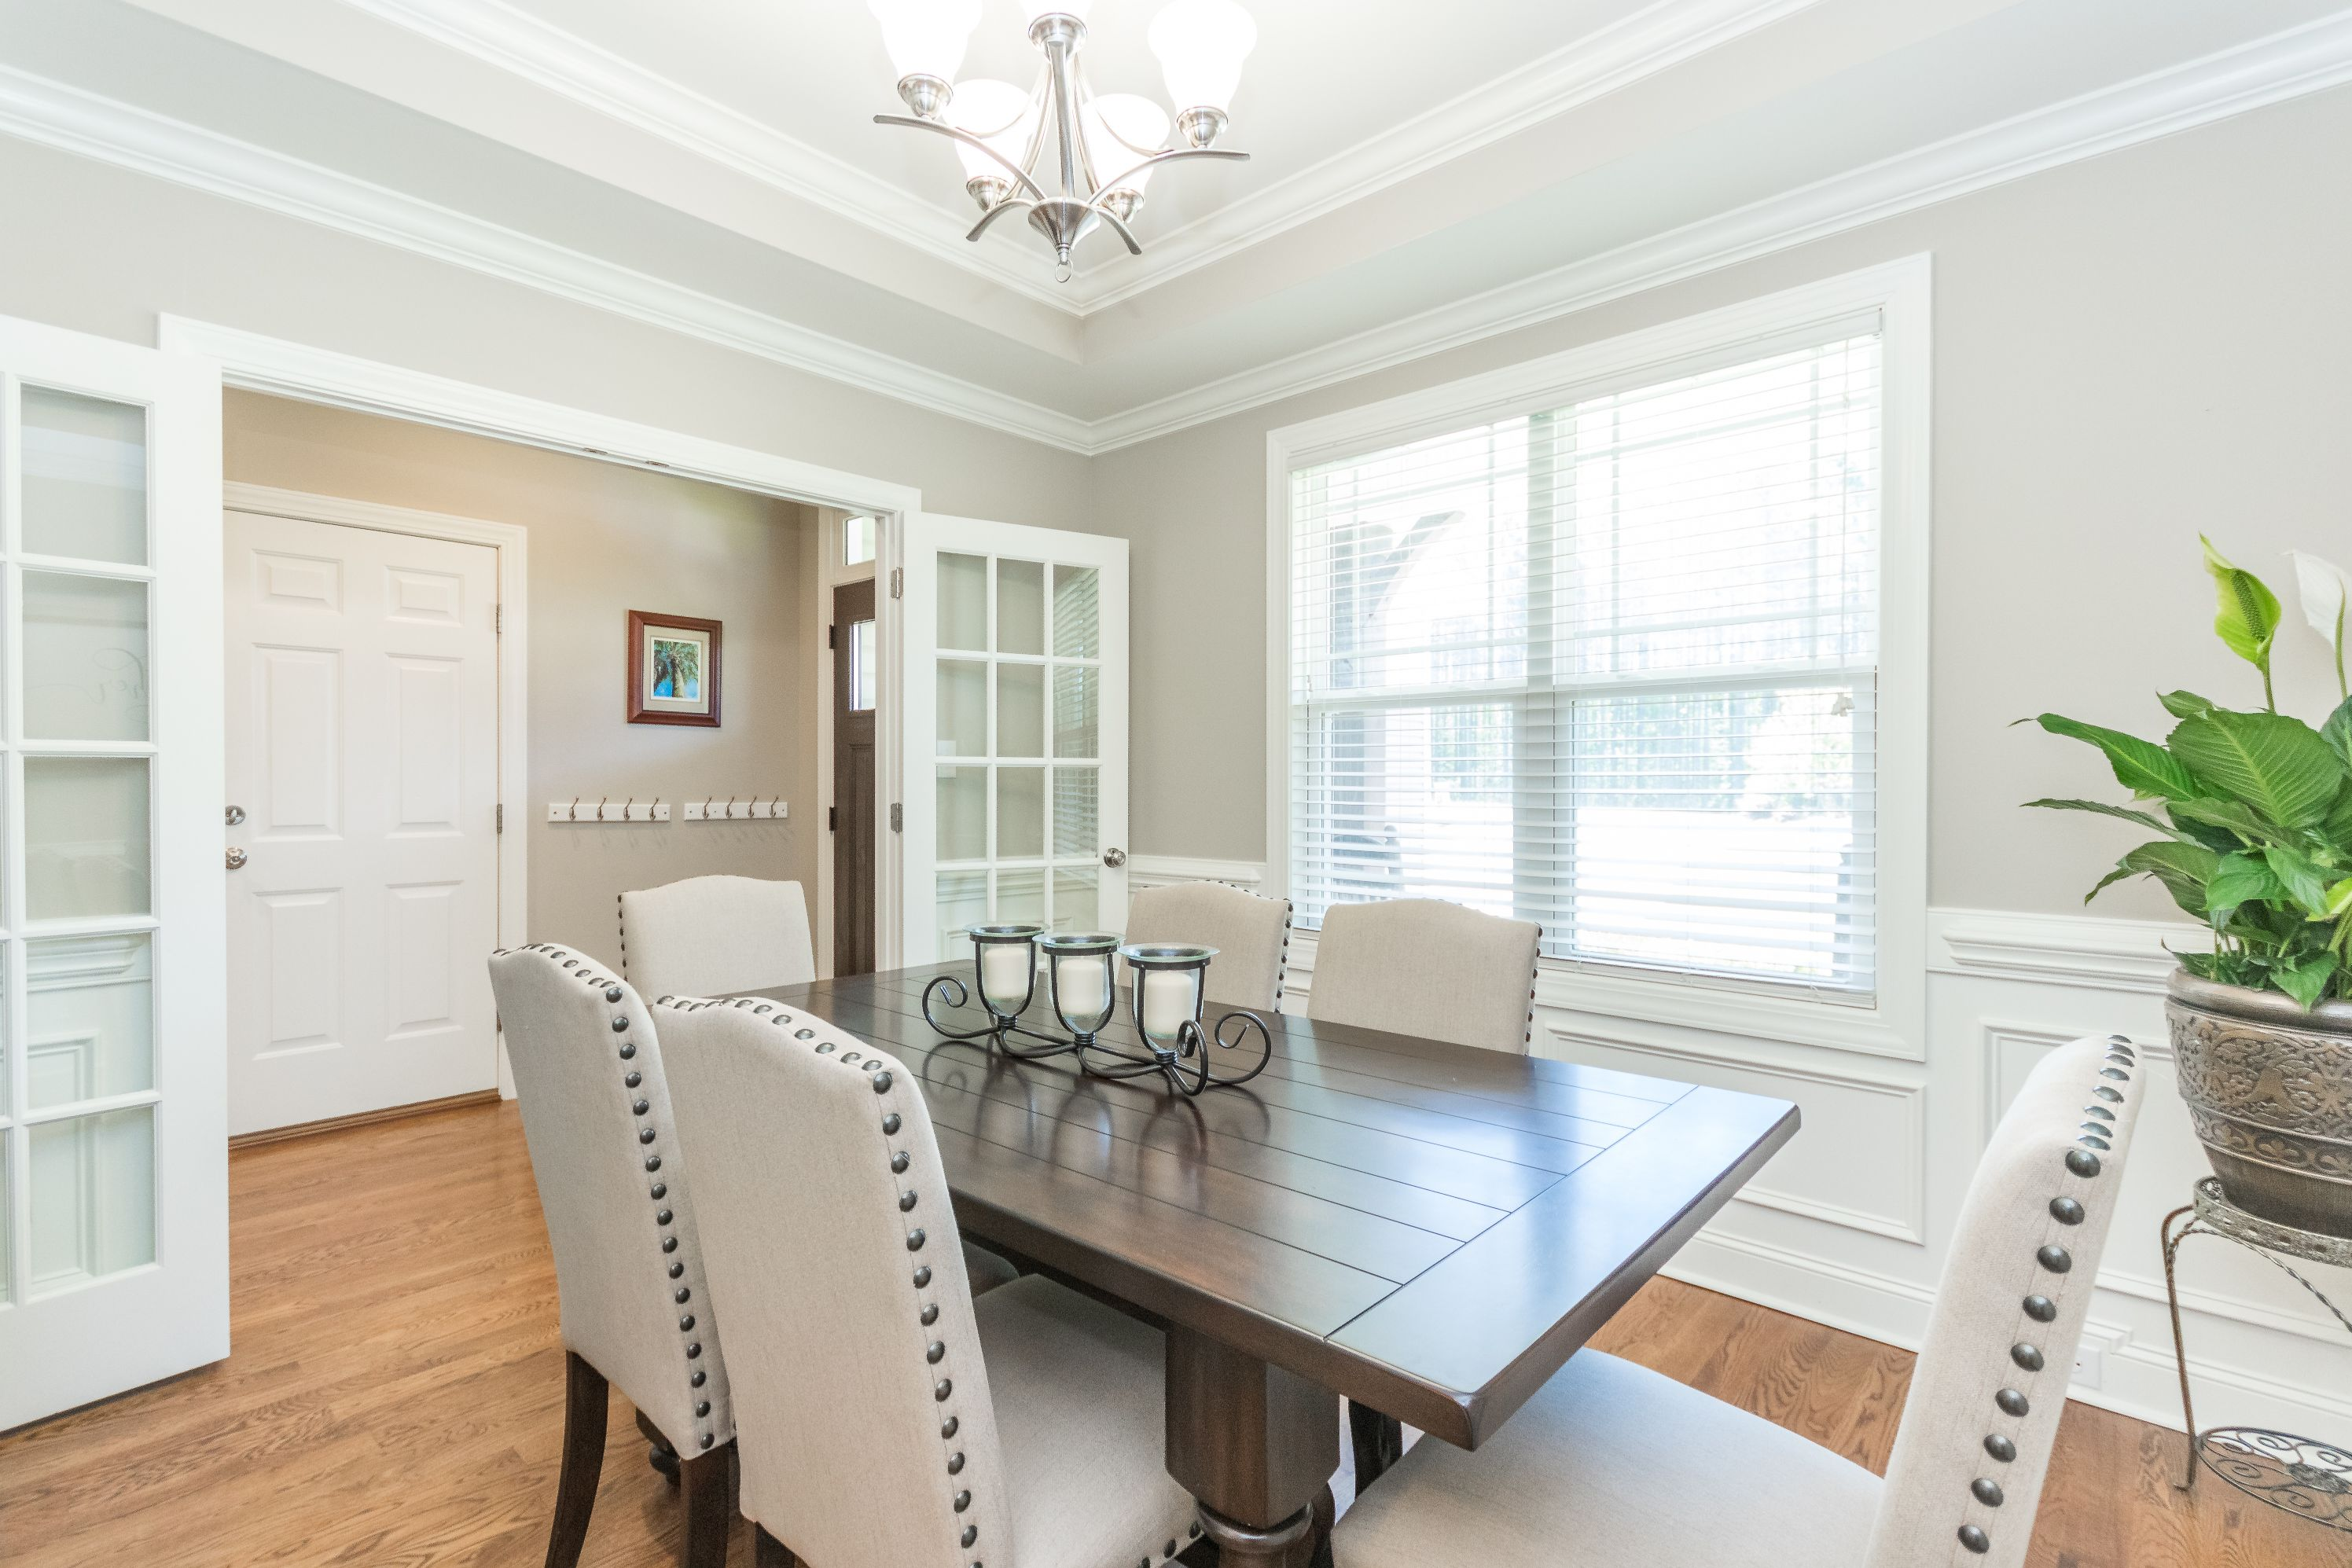 Formal dining room boasting french doors, hardwoods, wainscoting and custom trey ceiling